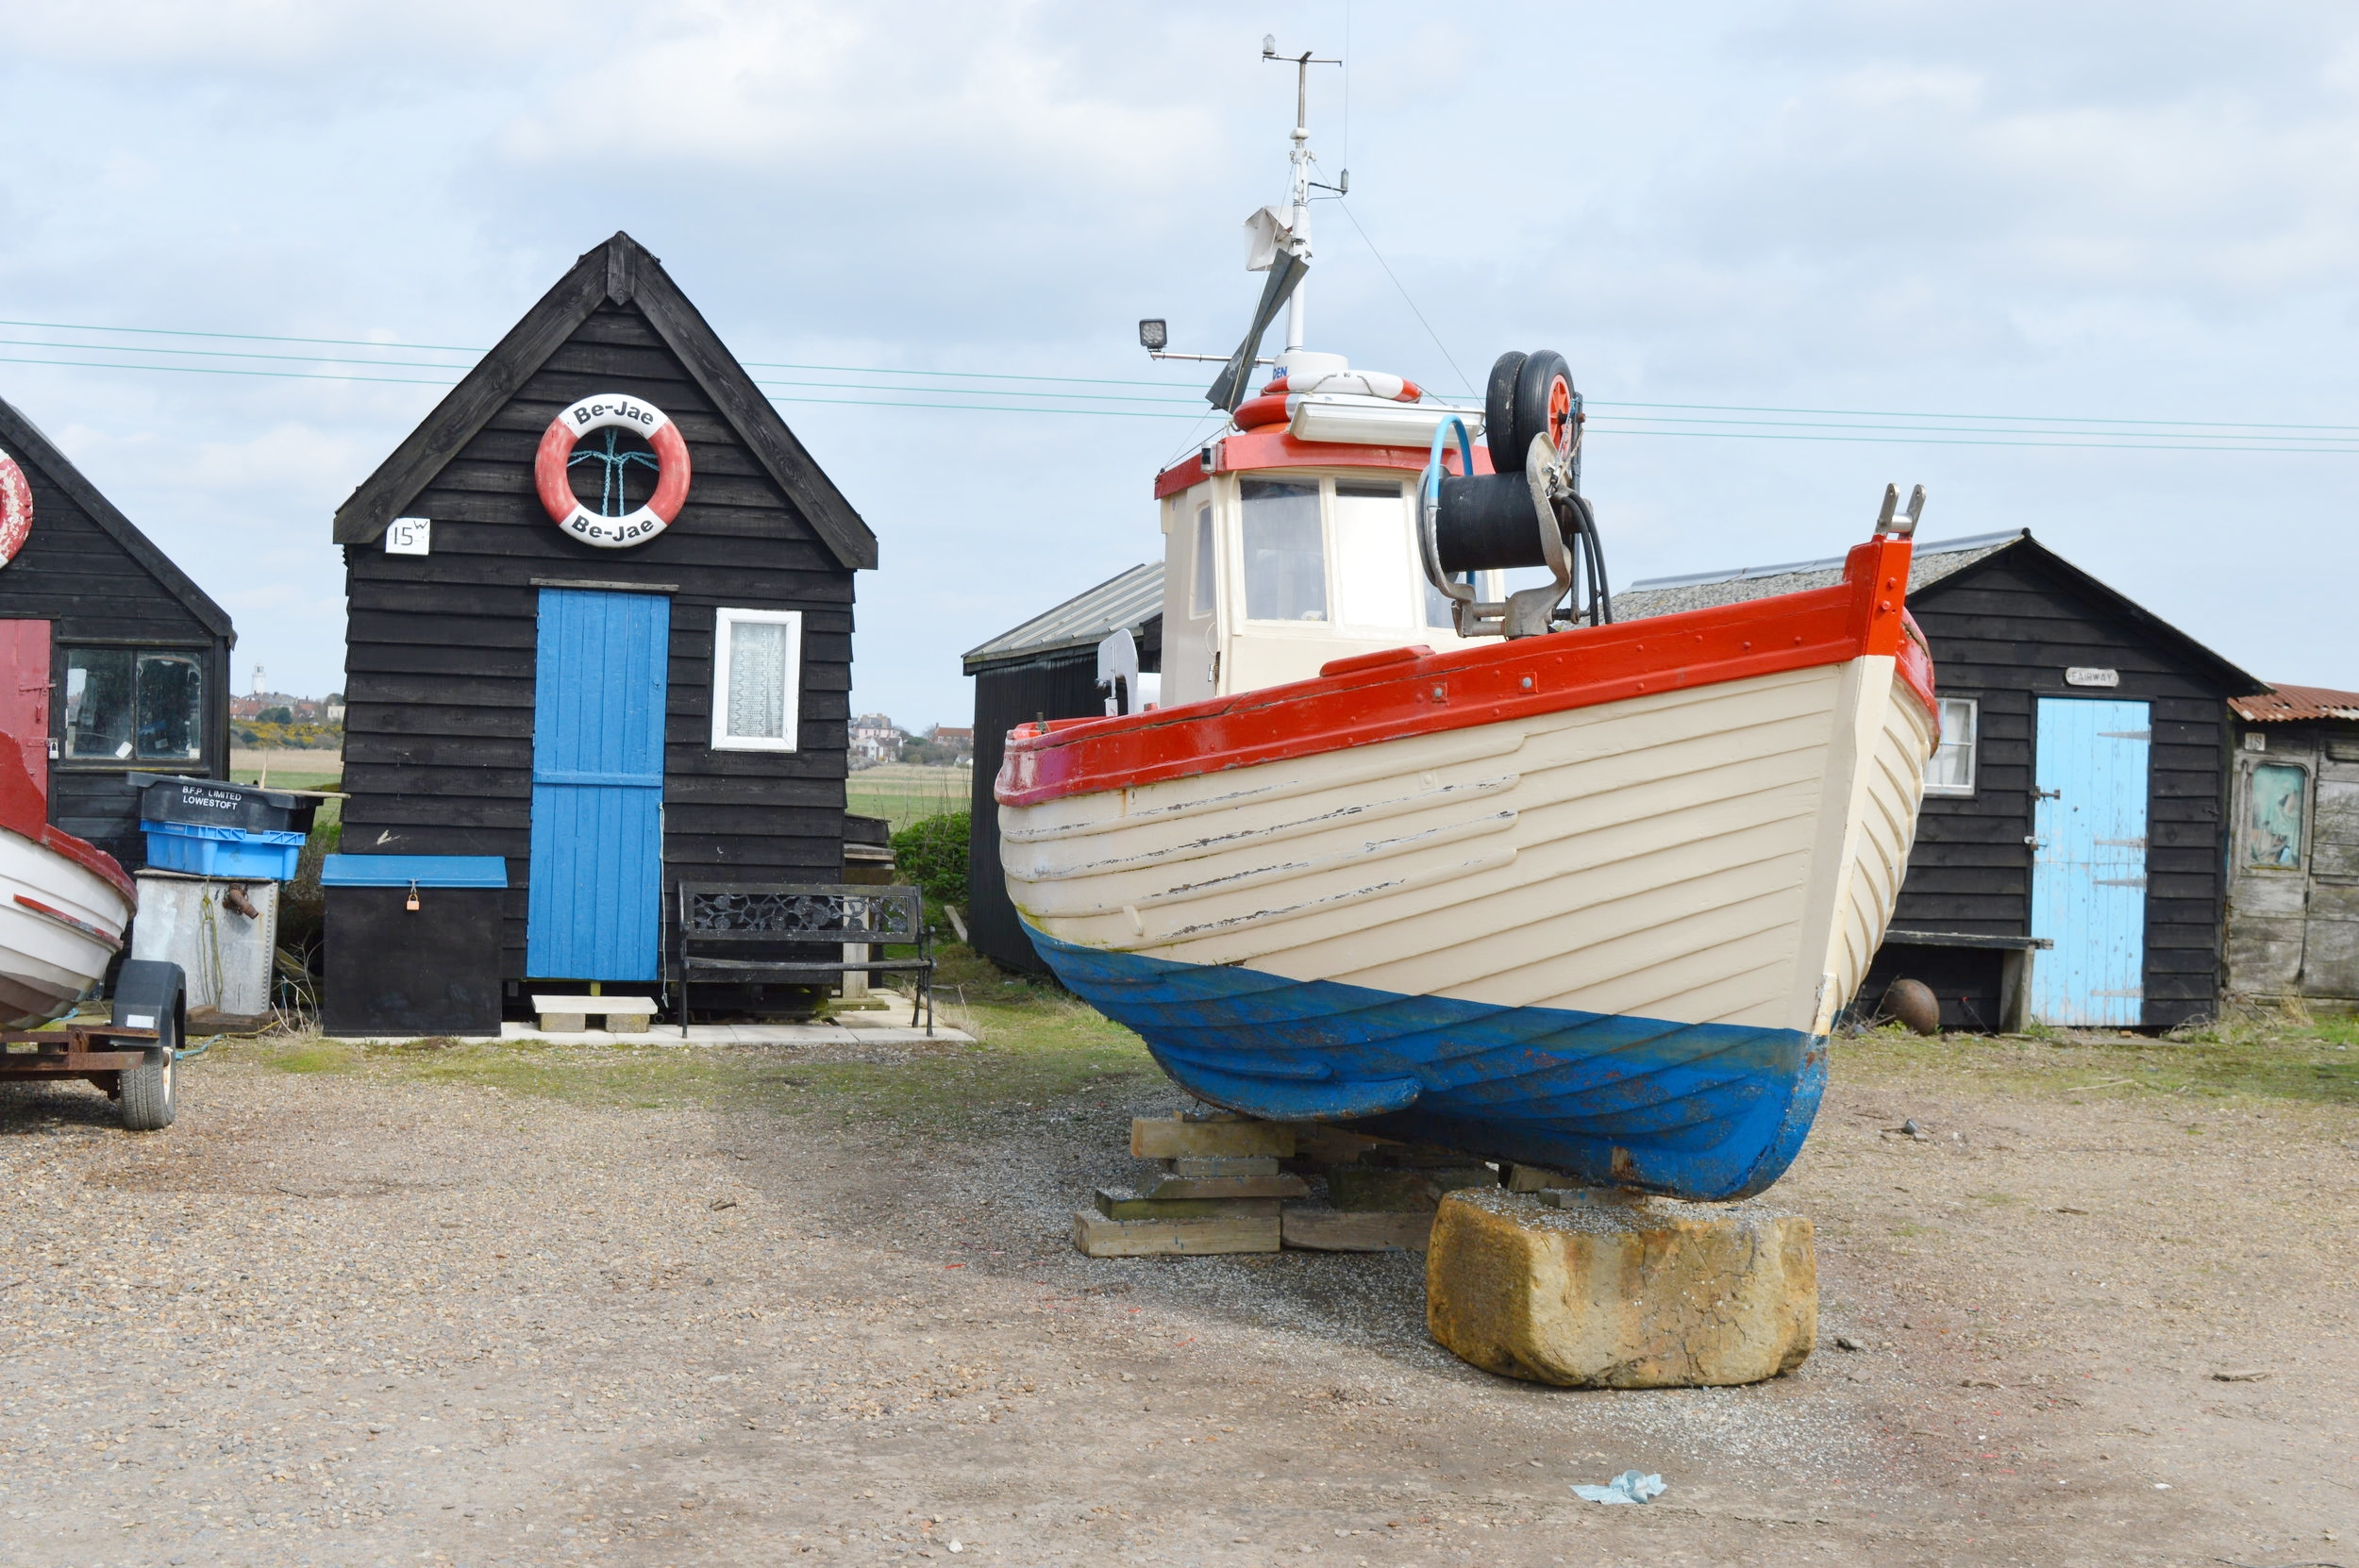 Above and below: Visit nearby Southwold without paying Southwold property prices!